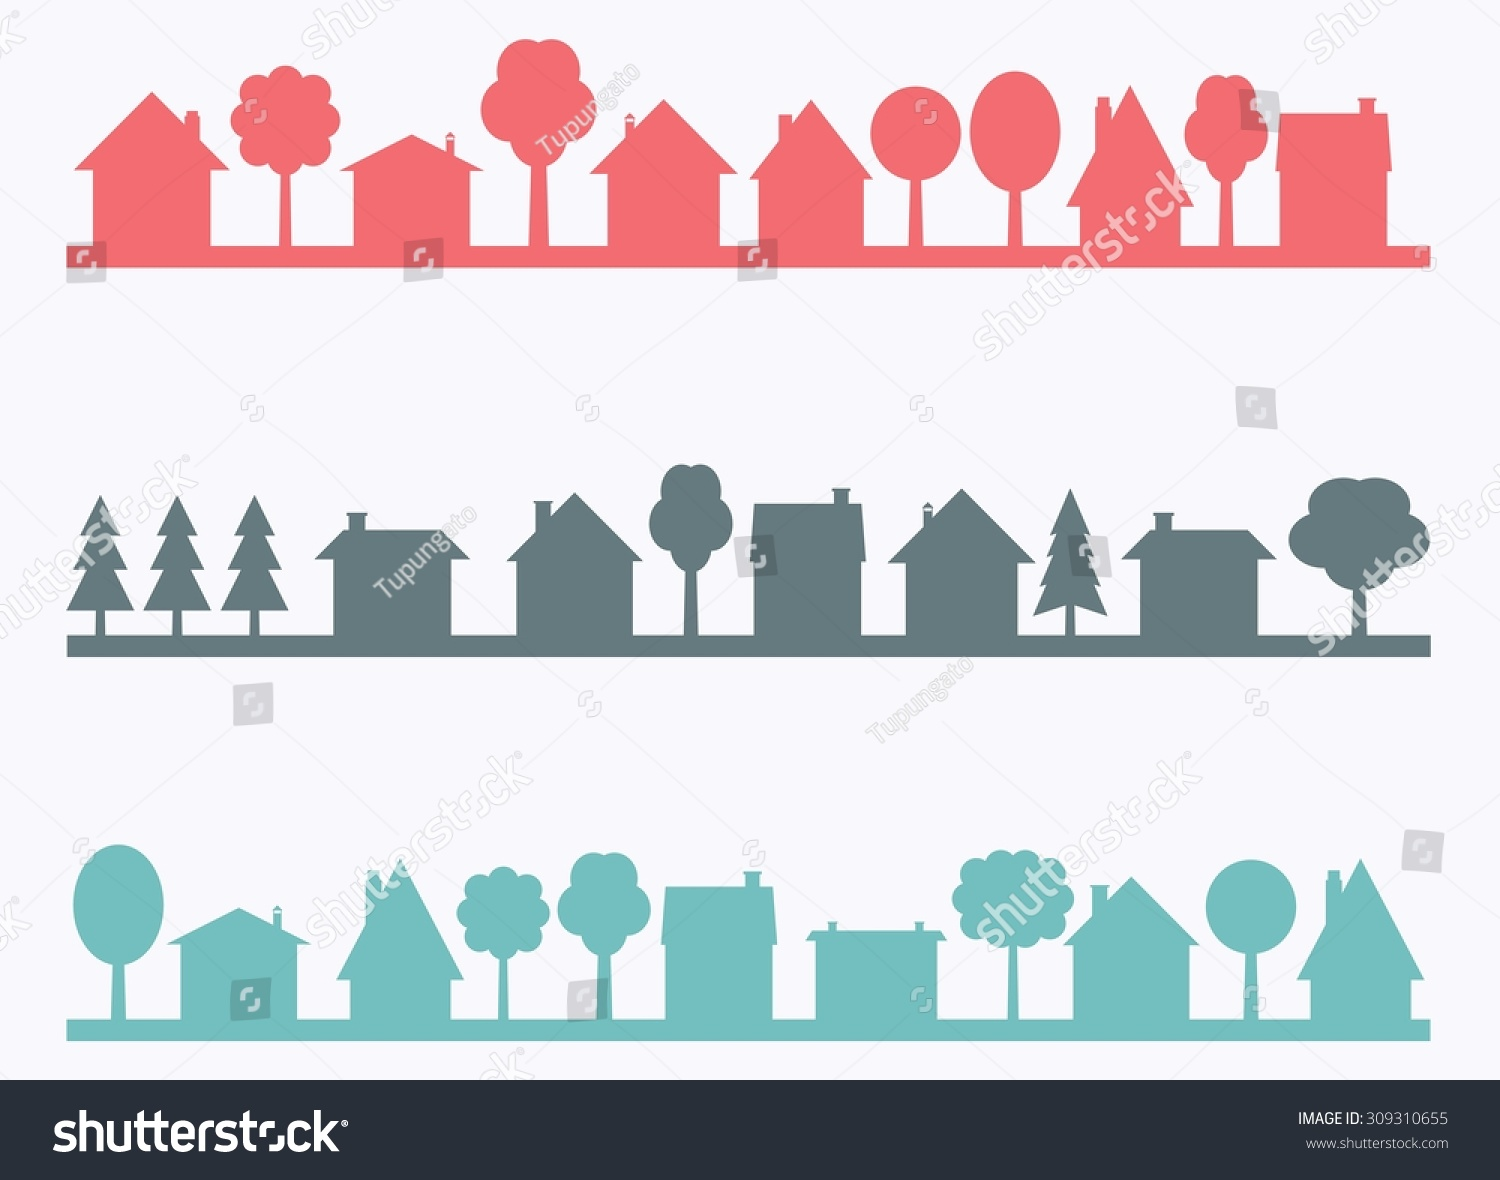 Town Landscape Vector Illustration: Small Town Vector Silhouettes Blank Copy Stock Vector